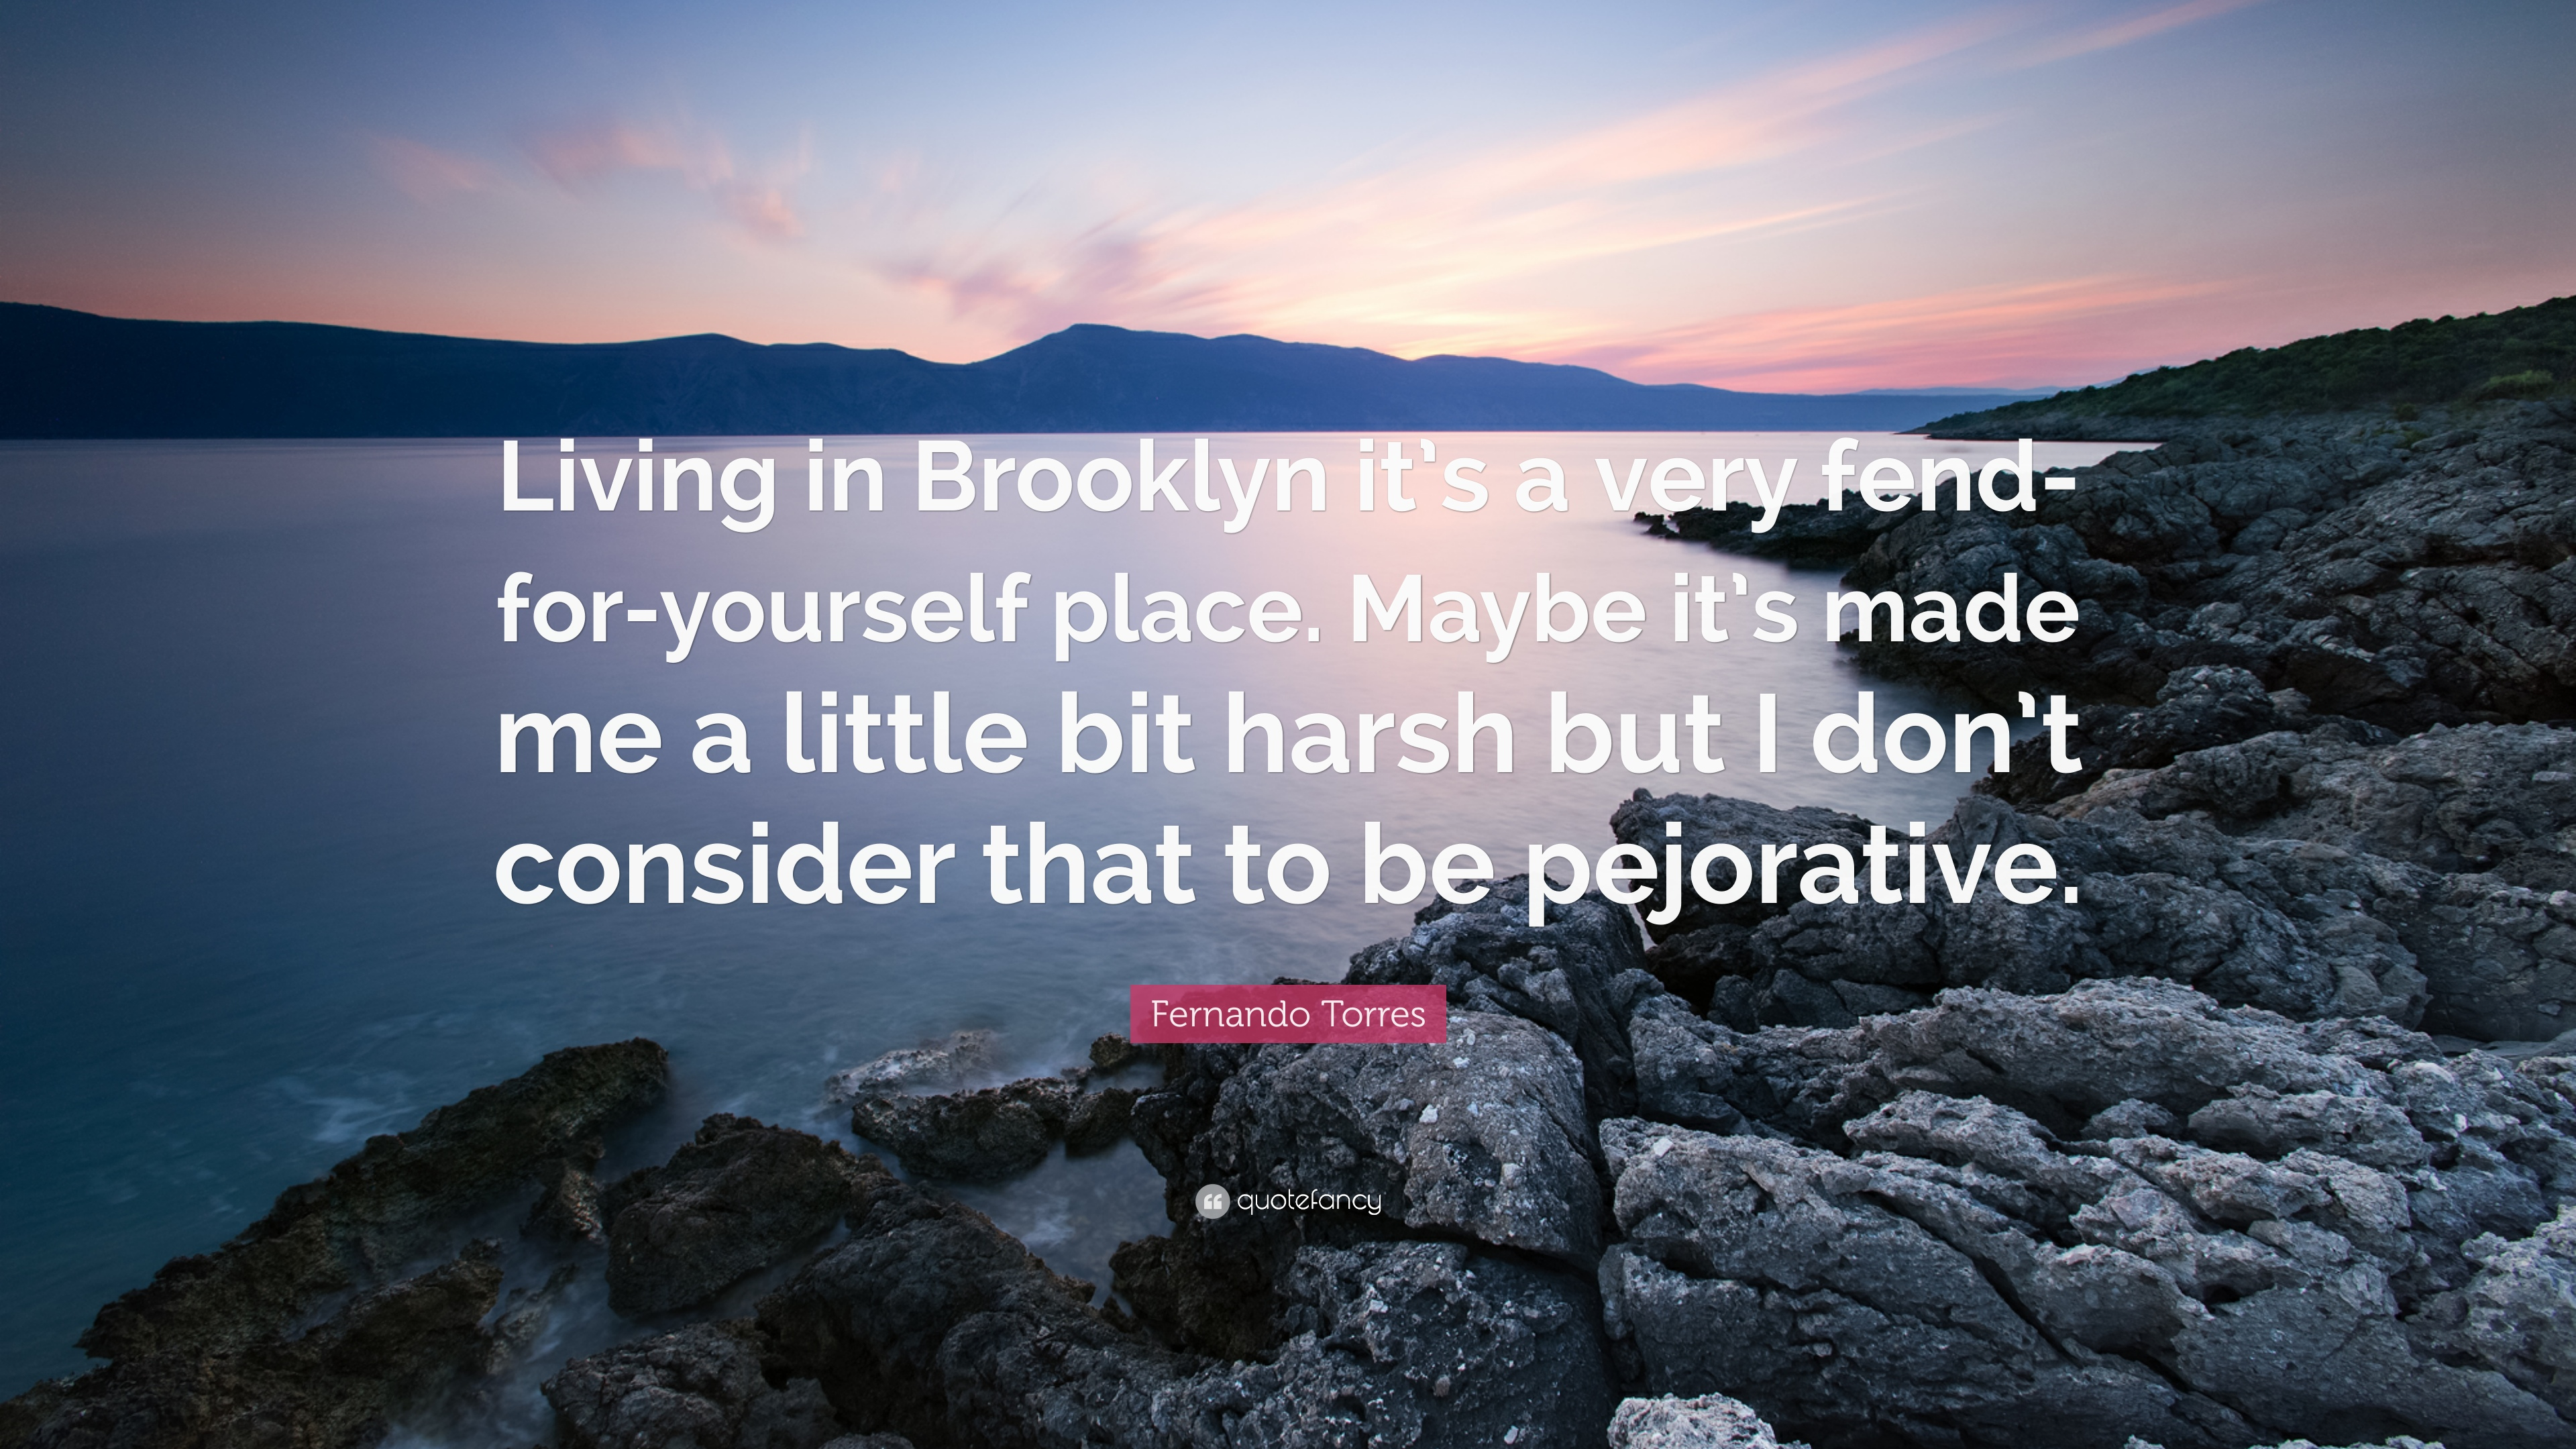 Fernando Torres Quote Living In Brooklyn Its A Very Fend For